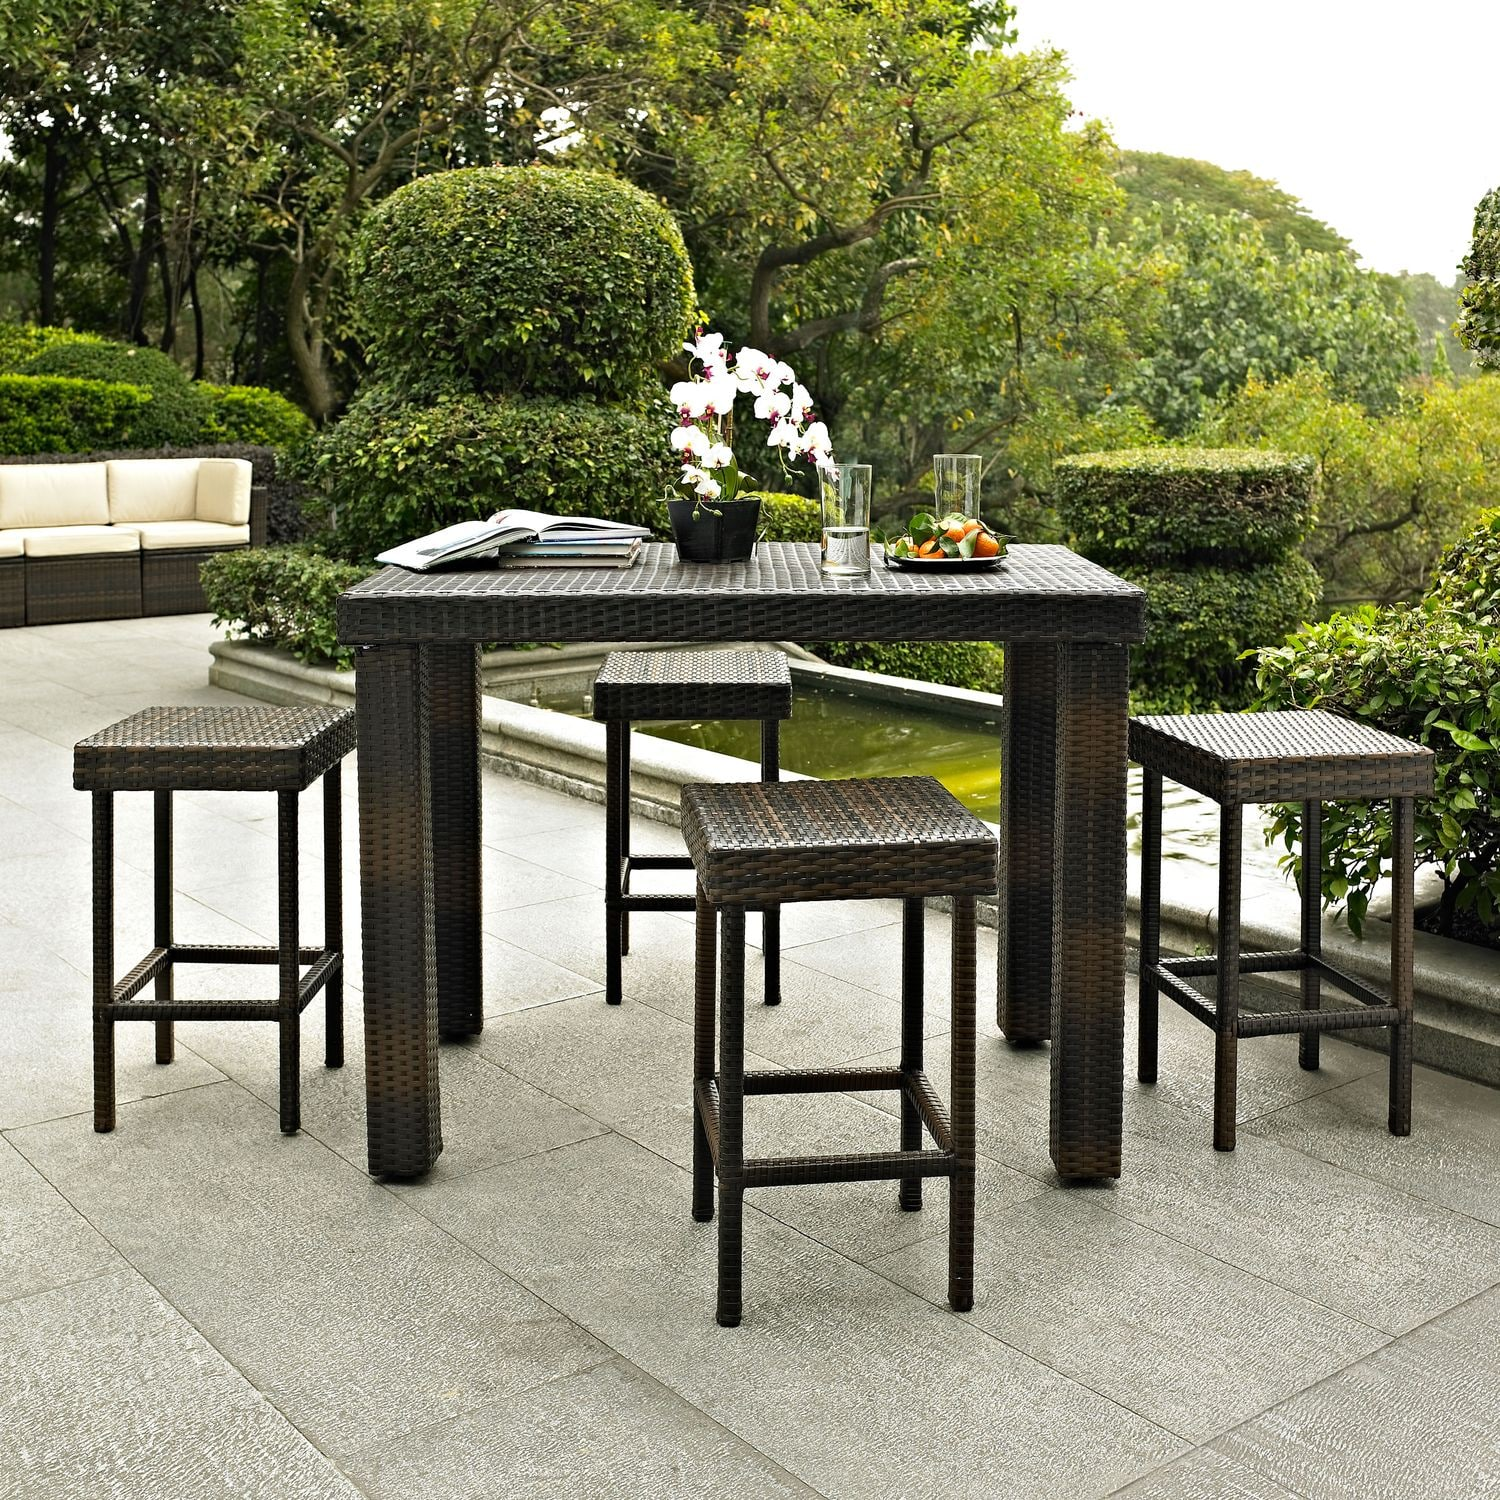 Outdoor Furniture - Aldo Outdoor Counter-Height Dining Table and 4 Stools - Brown